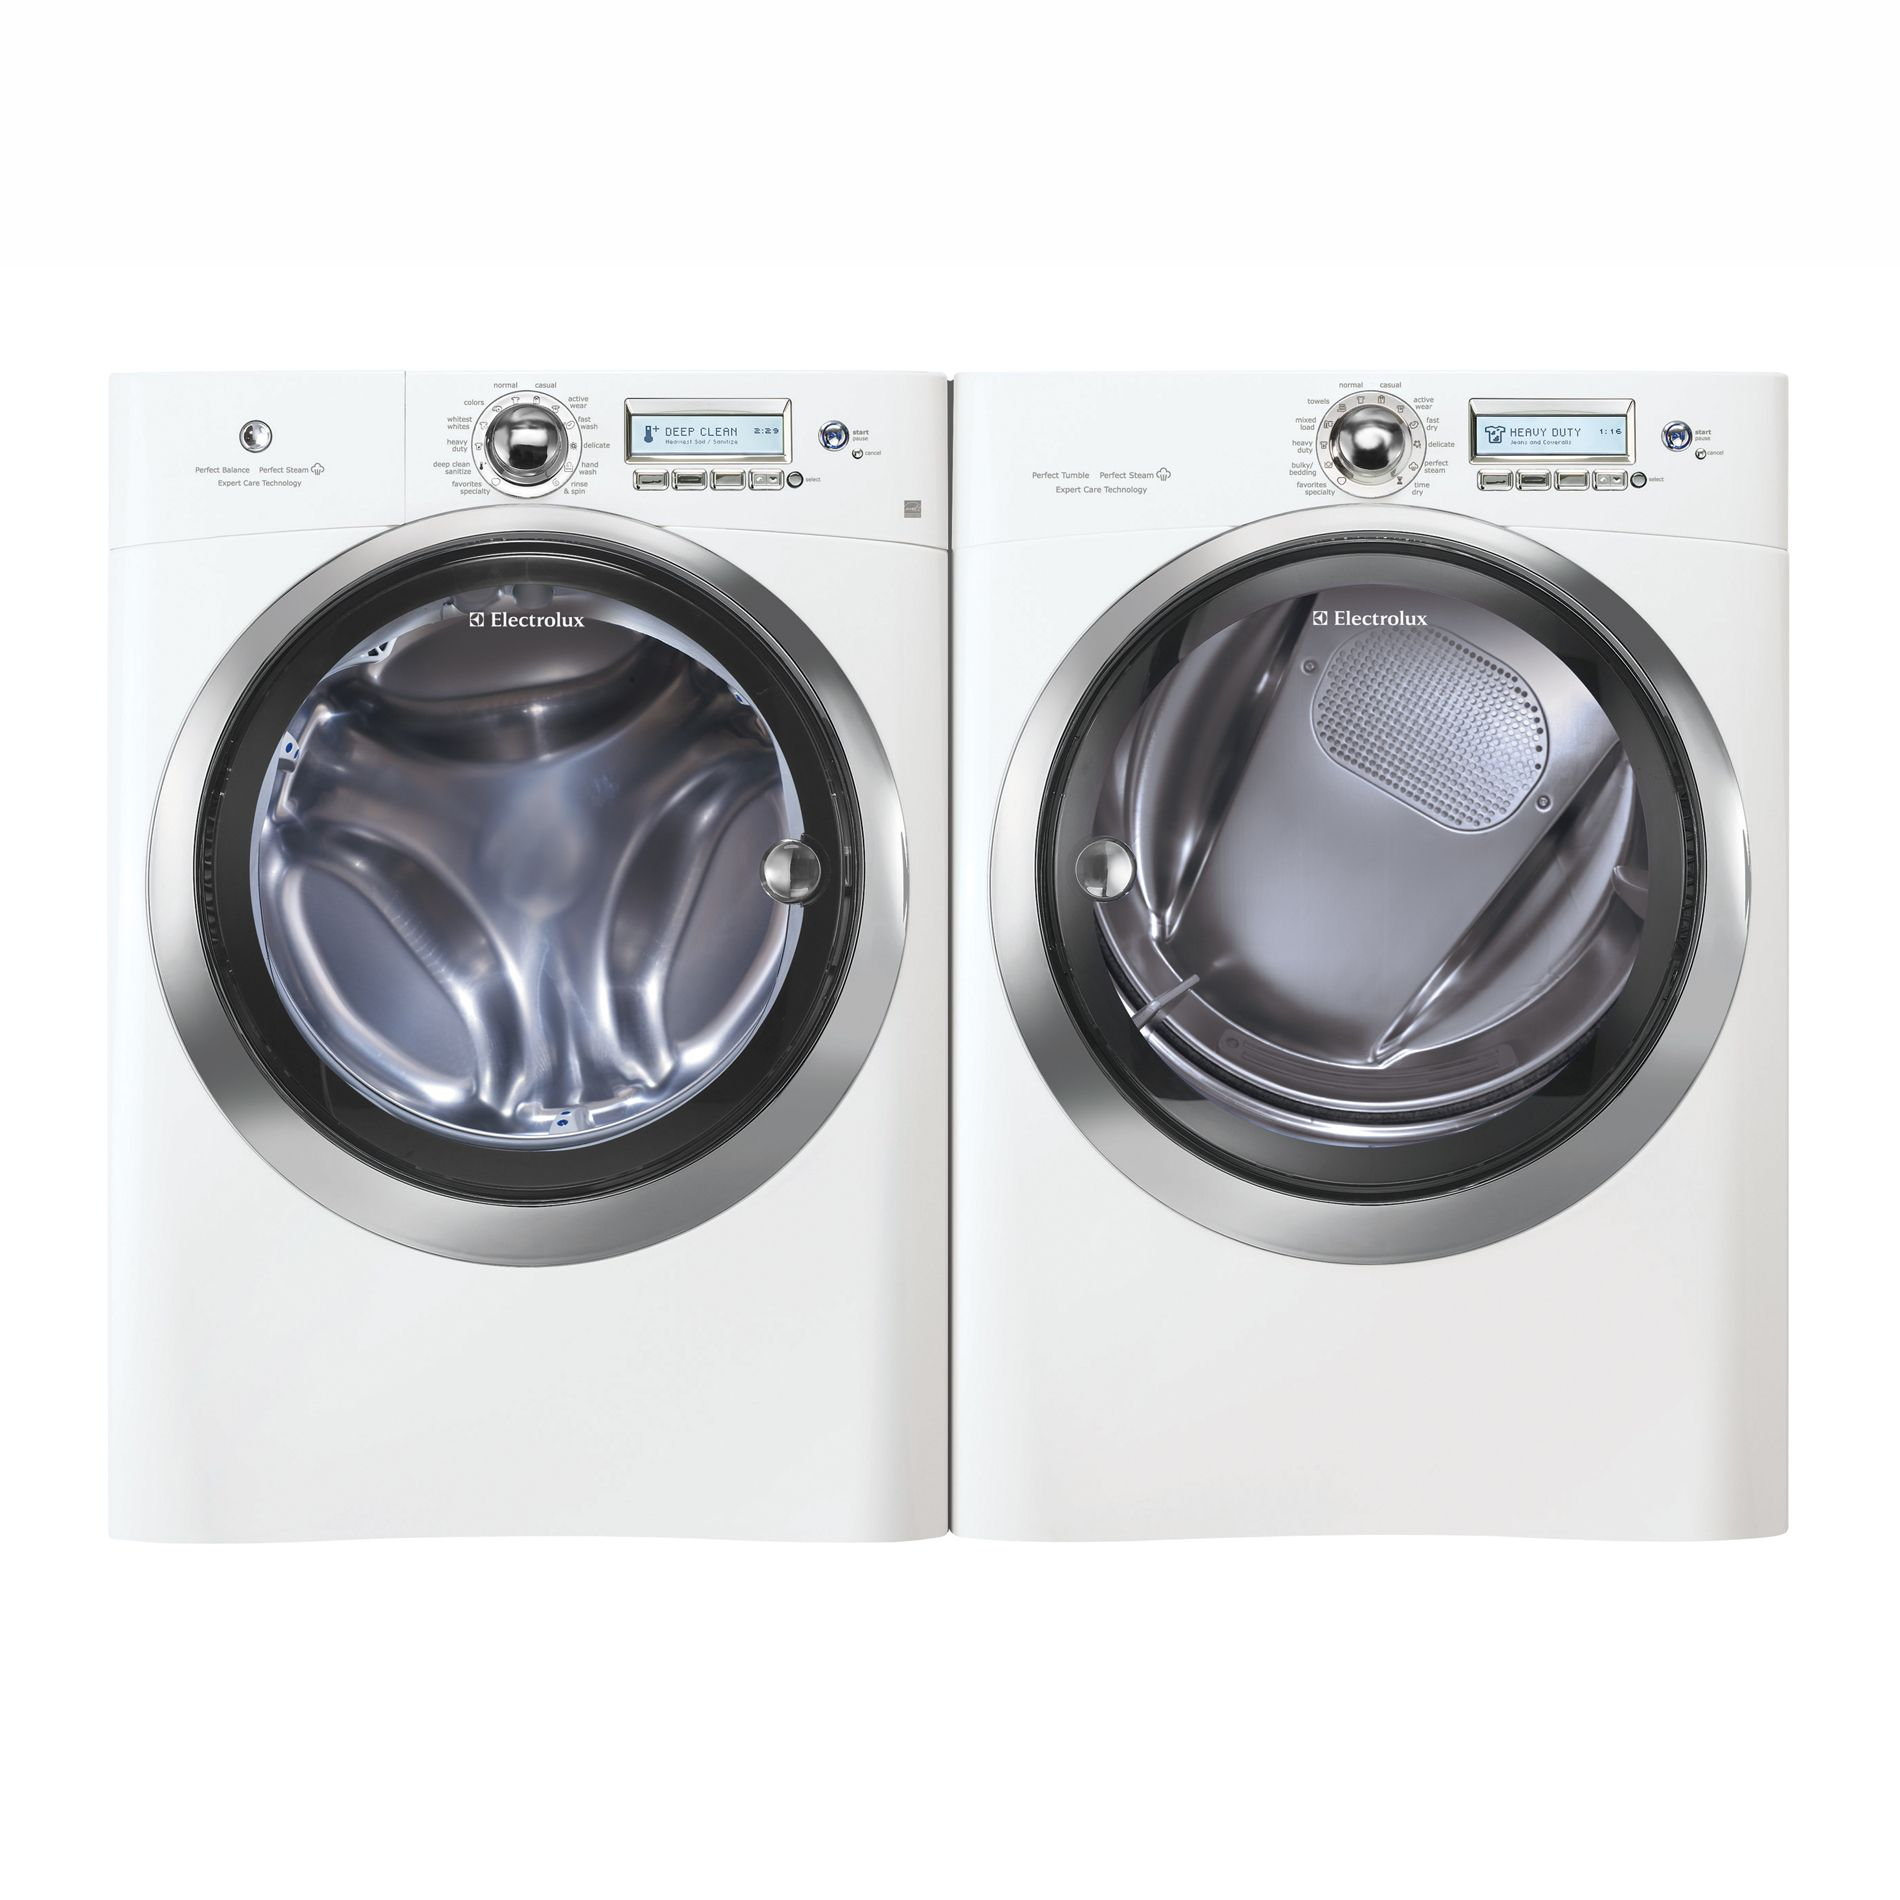 Electrolux EWFLS70JIW 4.4 cu. ft. Front-Load Washer w/ Steam - Island White